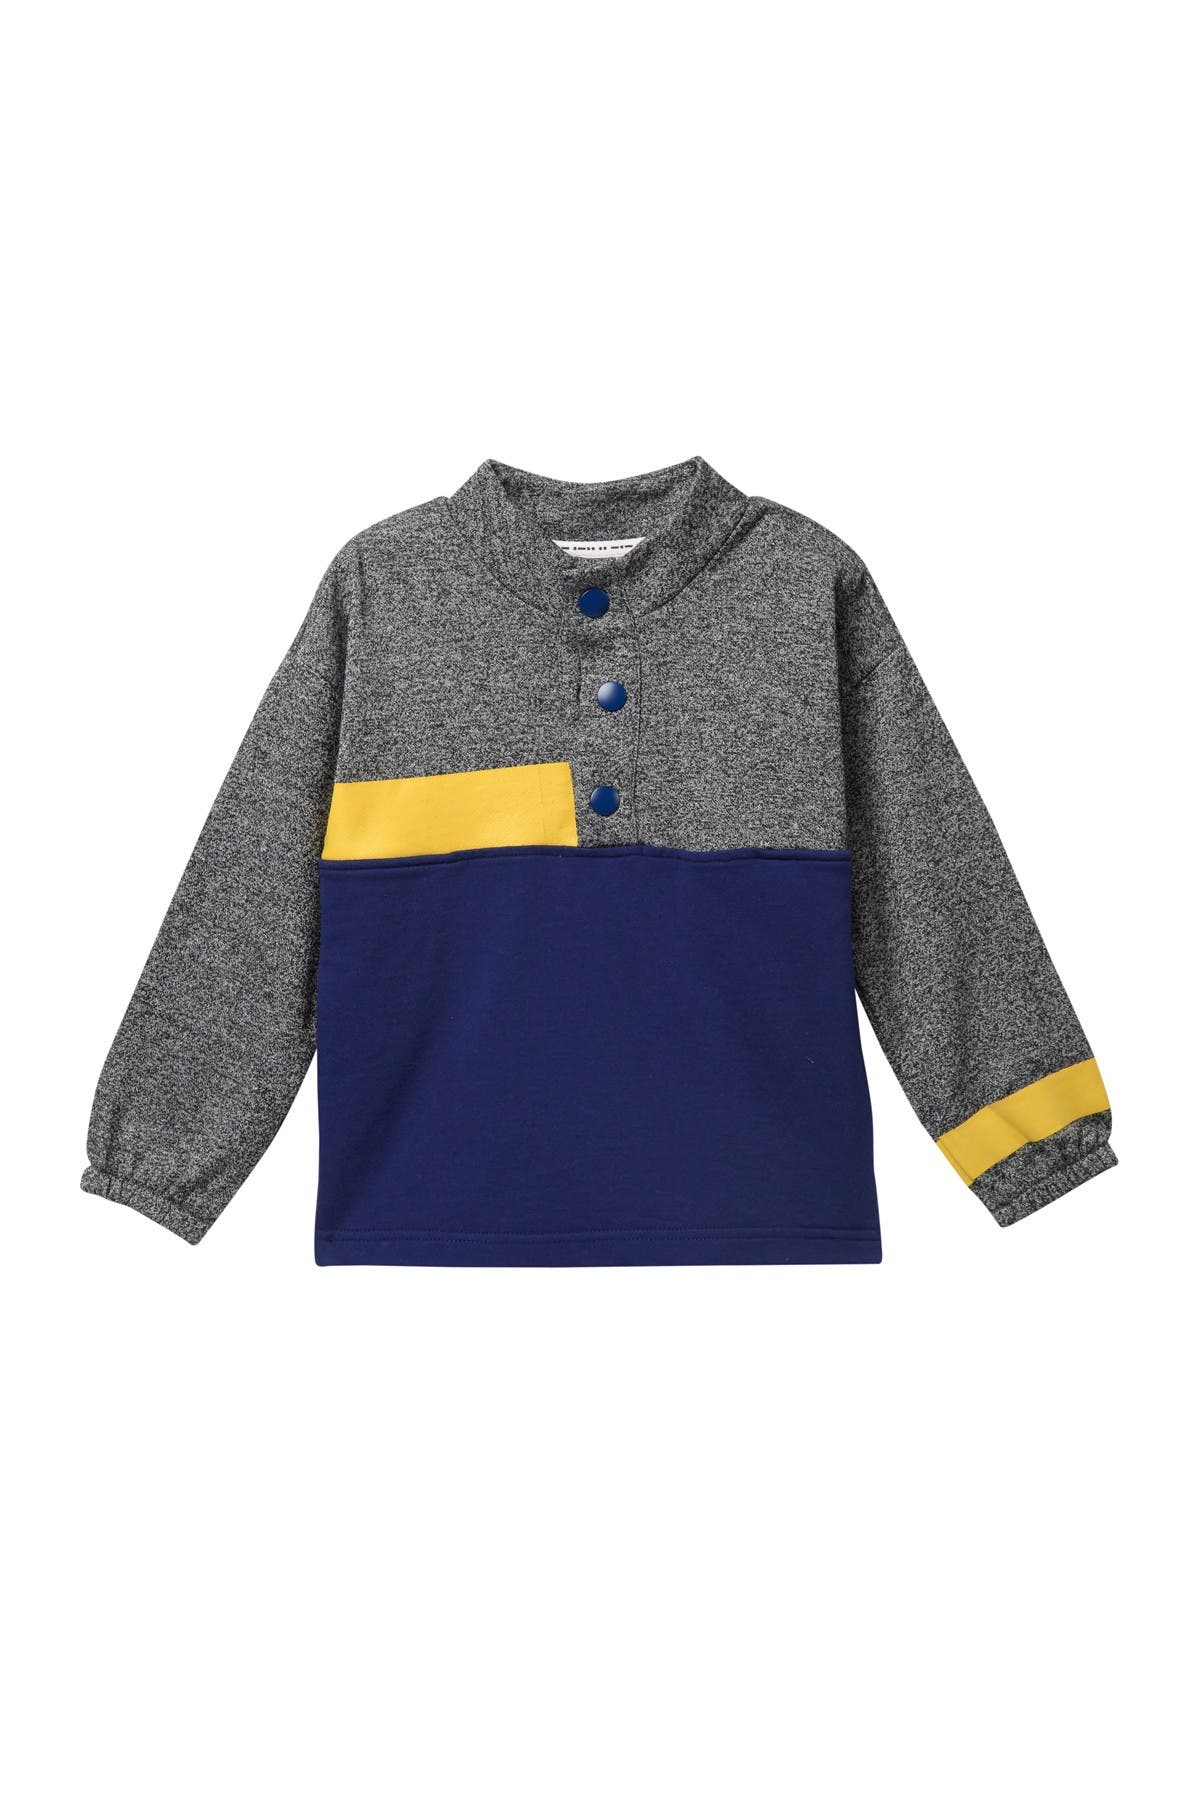 Image of Petit Lem Henley Pullover Knit Sweater